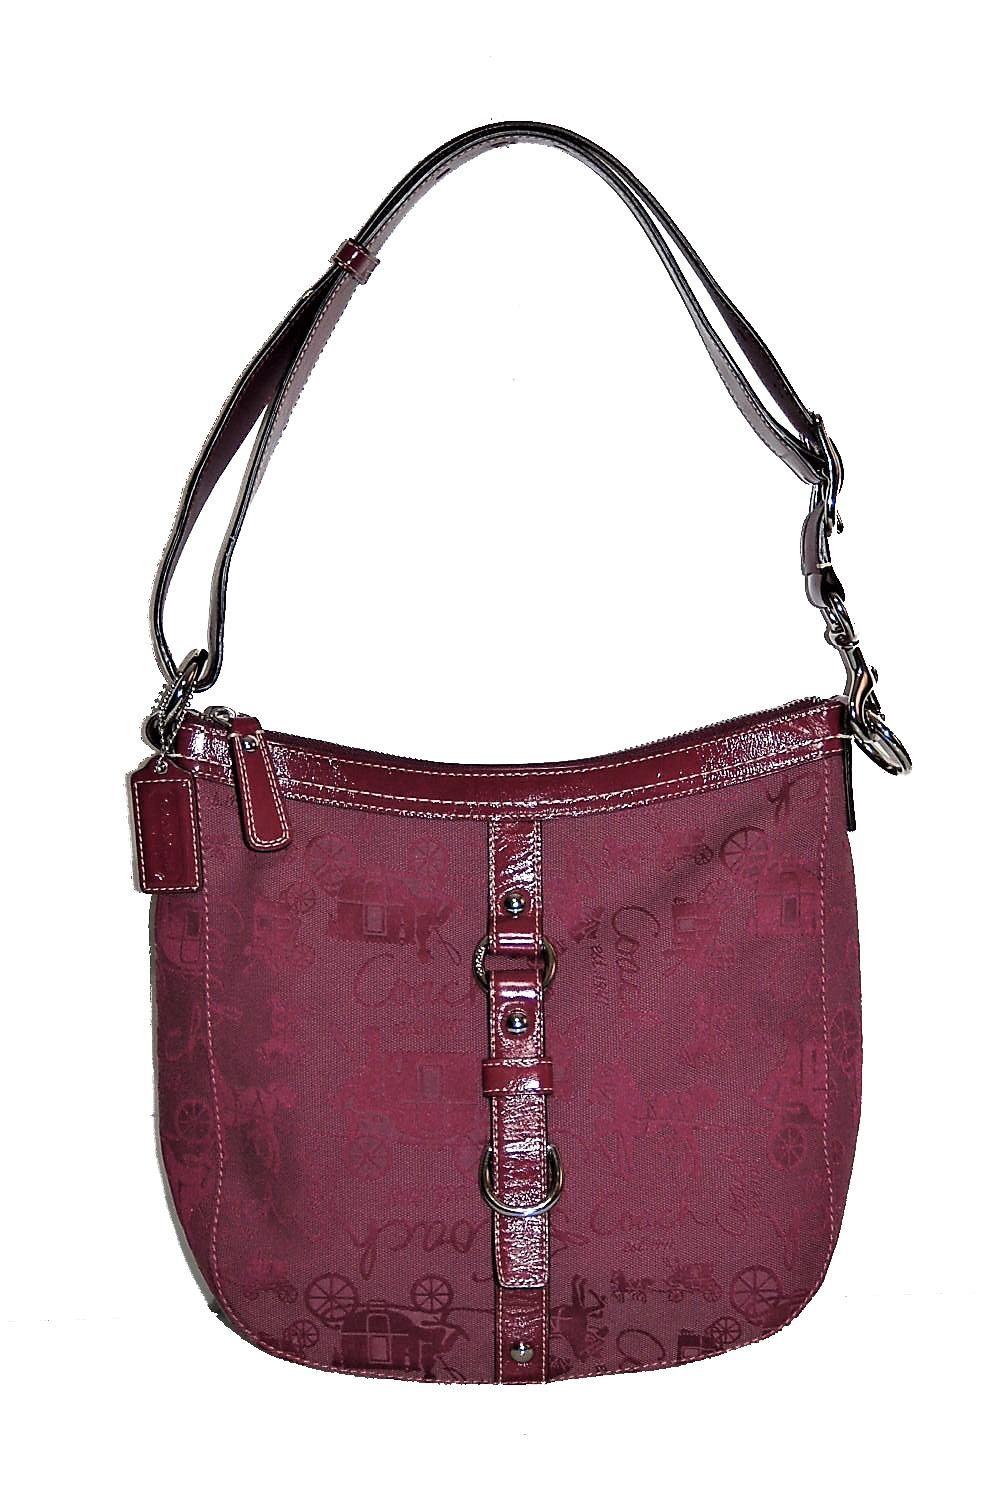 4165f0dccb59c Coach New F14036 Chelsea Horse Carriage Convertible Berry Purple Cross Body  Bag. Get the trendiest Cross Body Bag of the season!